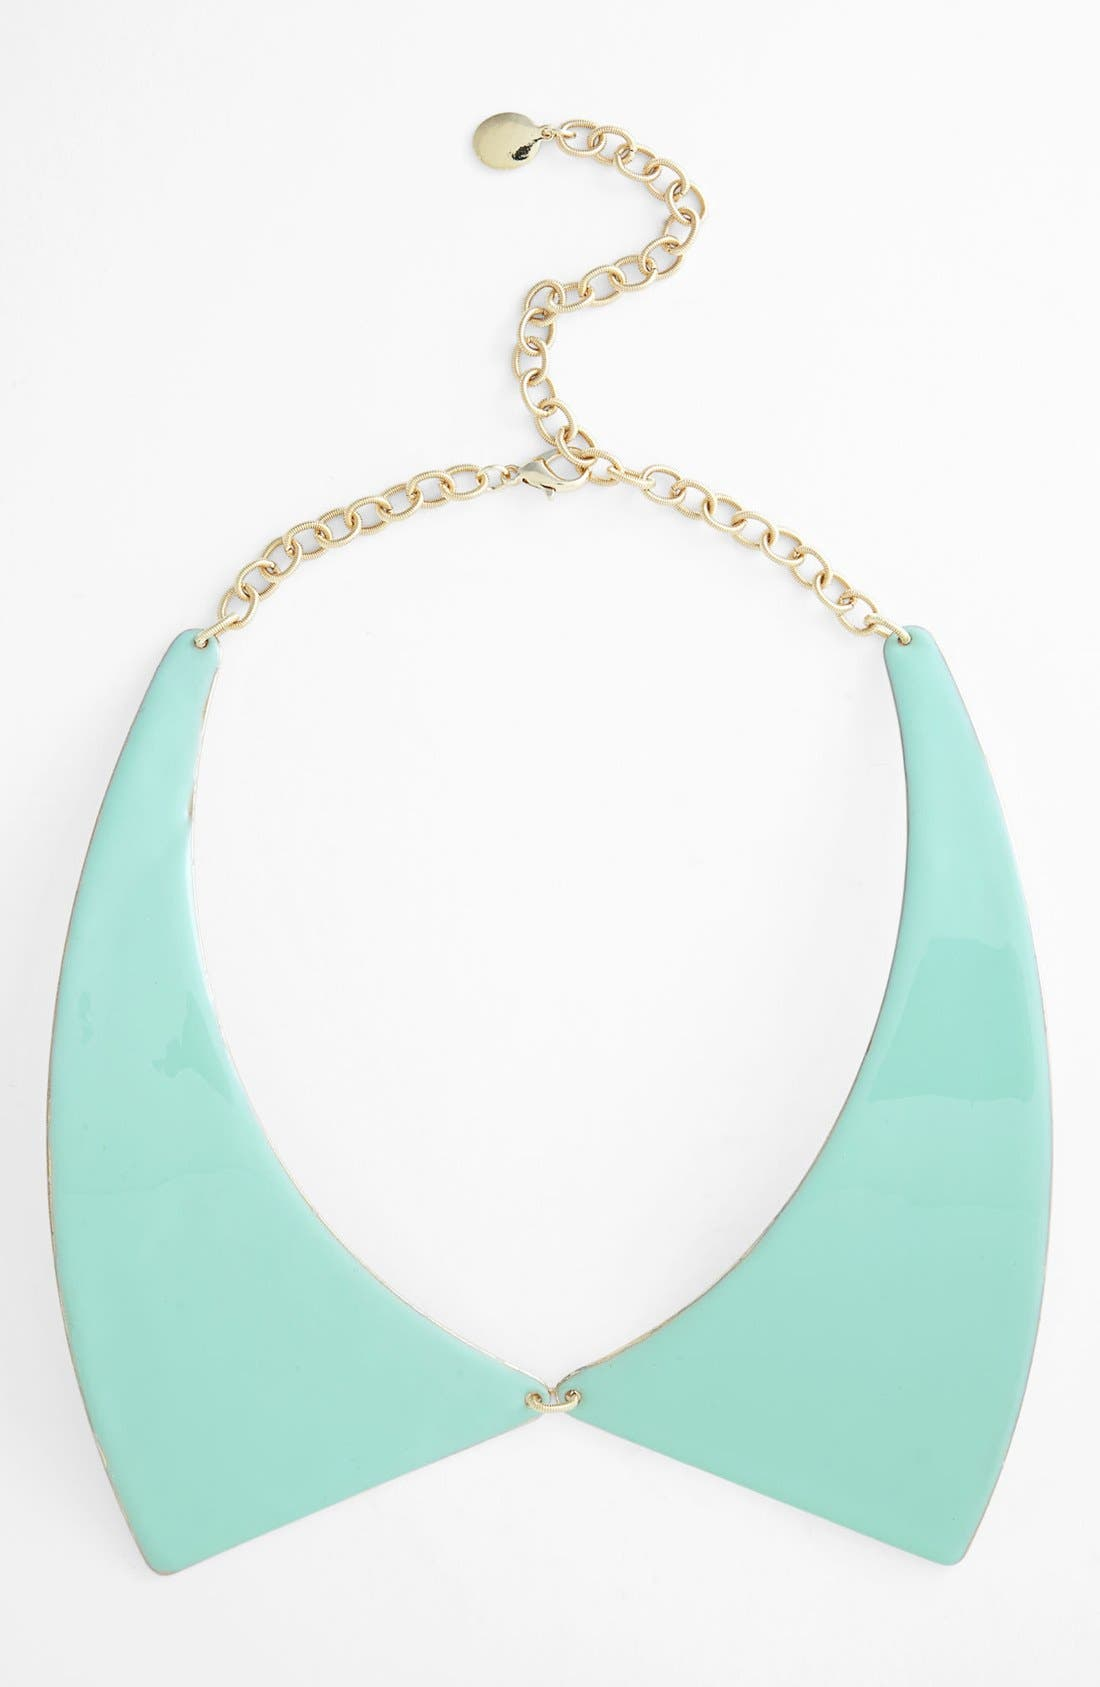 Alternate Image 1 Selected - Bonnie Jonas Metal Collar Necklace